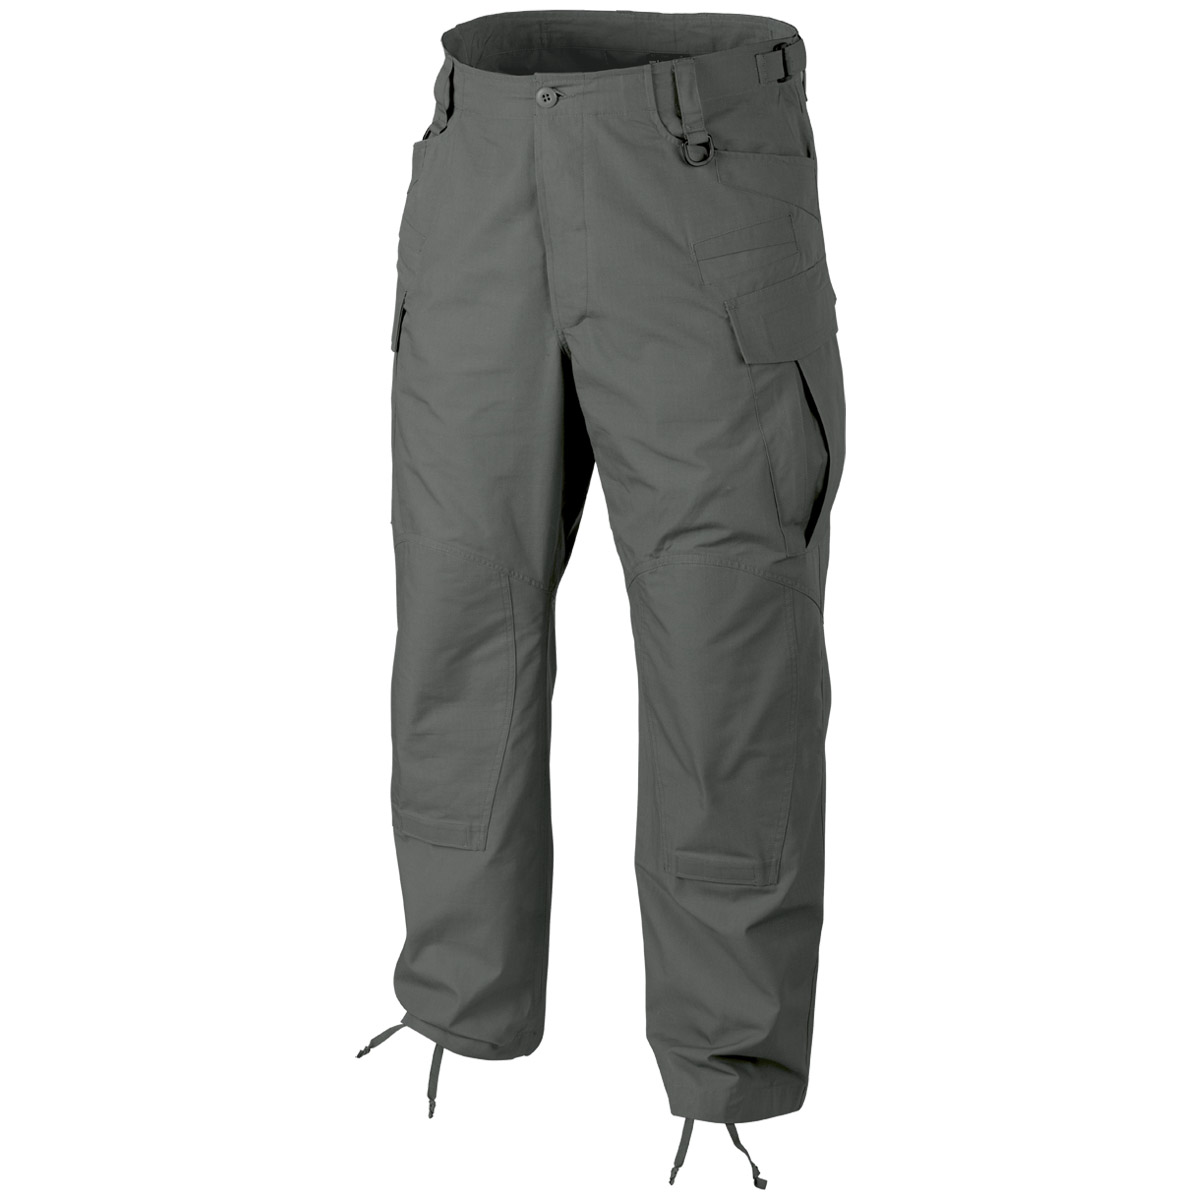 Grey. Price £ £ Clear All. Show Results. Mens Cargo Trousers. Read More. Cargo trousers are lightweight, fast drying and resistant to fade. Choose from a selection of cargo trousers for men with great features including anti mosquito treatments, handy pockets and stretch fabrics. With a range of styles available, we have the mens trousers.